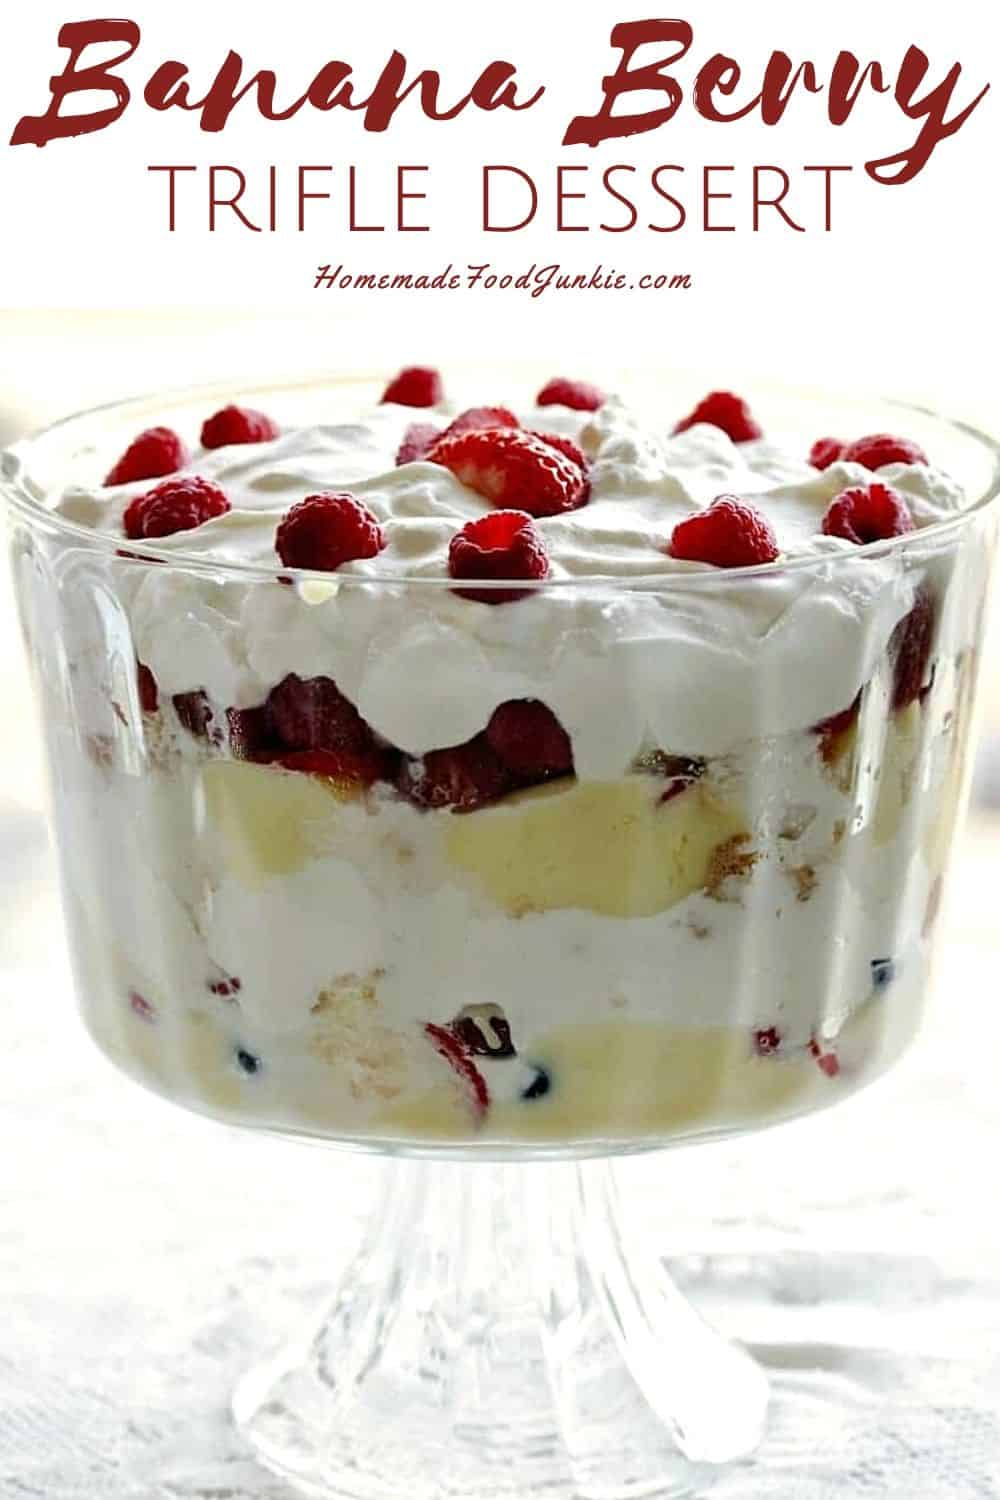 Banana berry trifle dessert-pin image